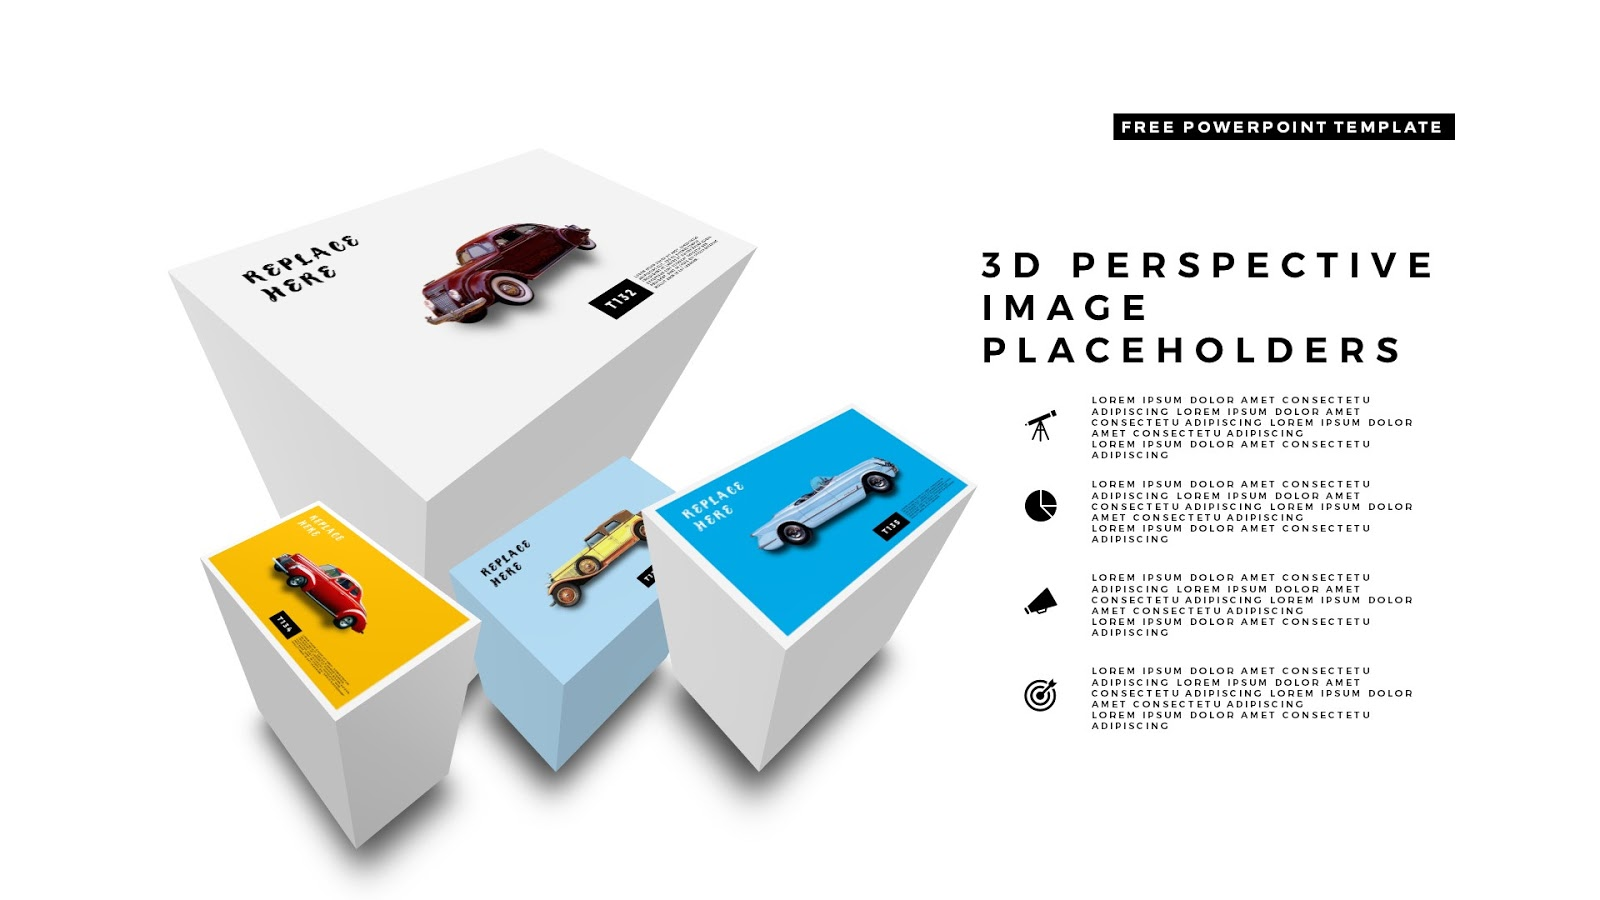 perspective 3d image transformation for powerpoint templates, Umd Presentation Template, Presentation templates